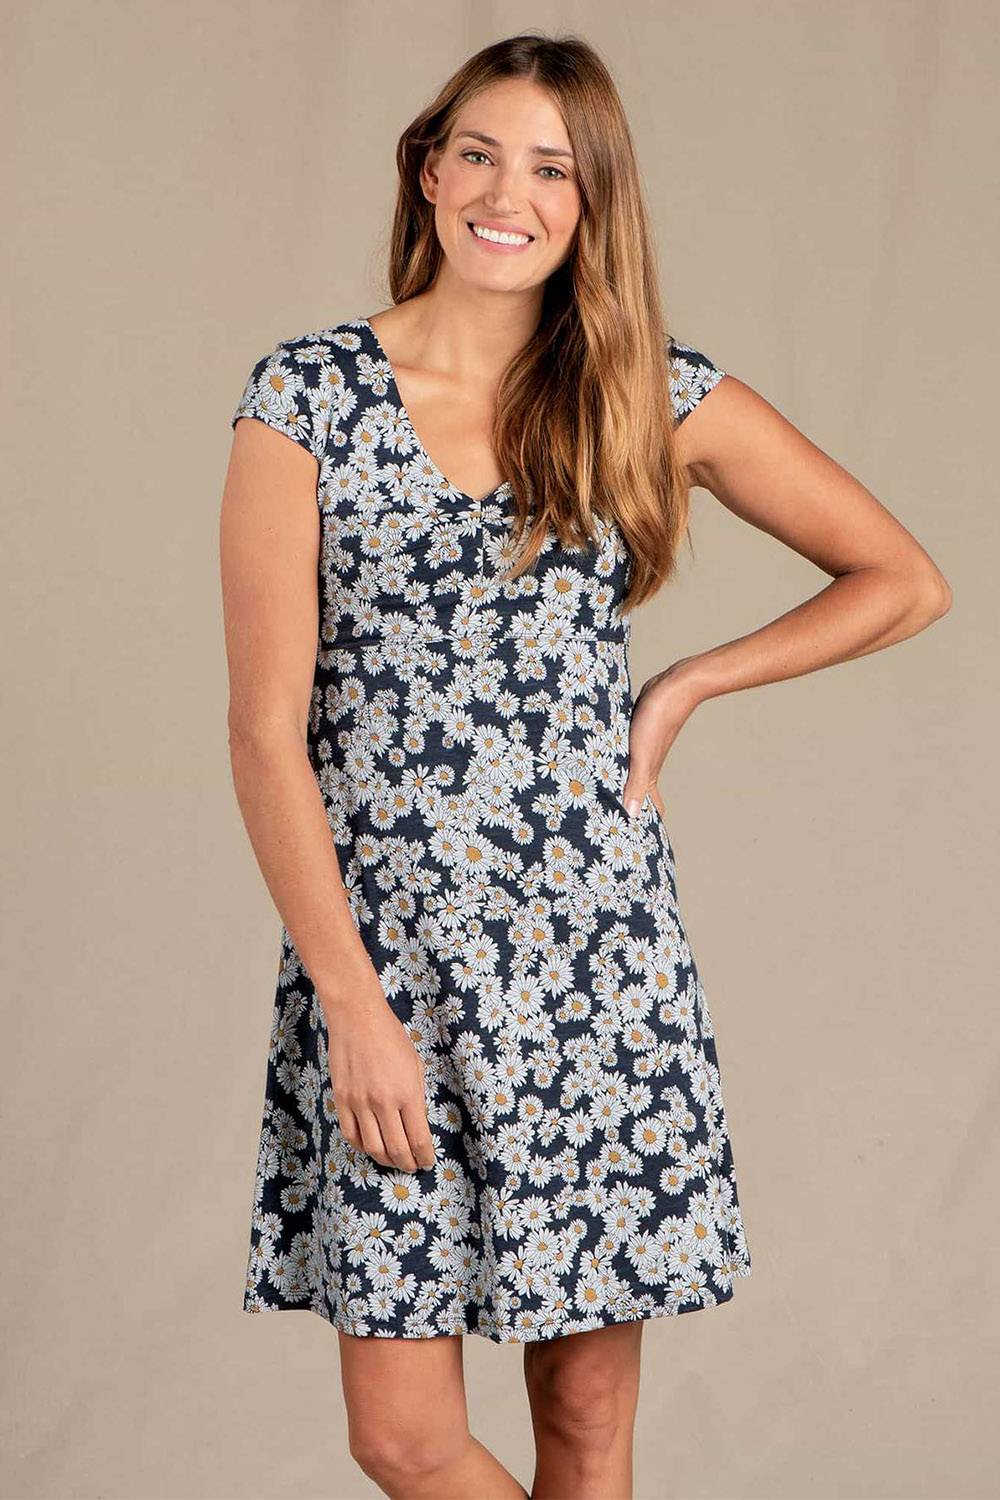 toadandco sustainable cheap cute summer dress